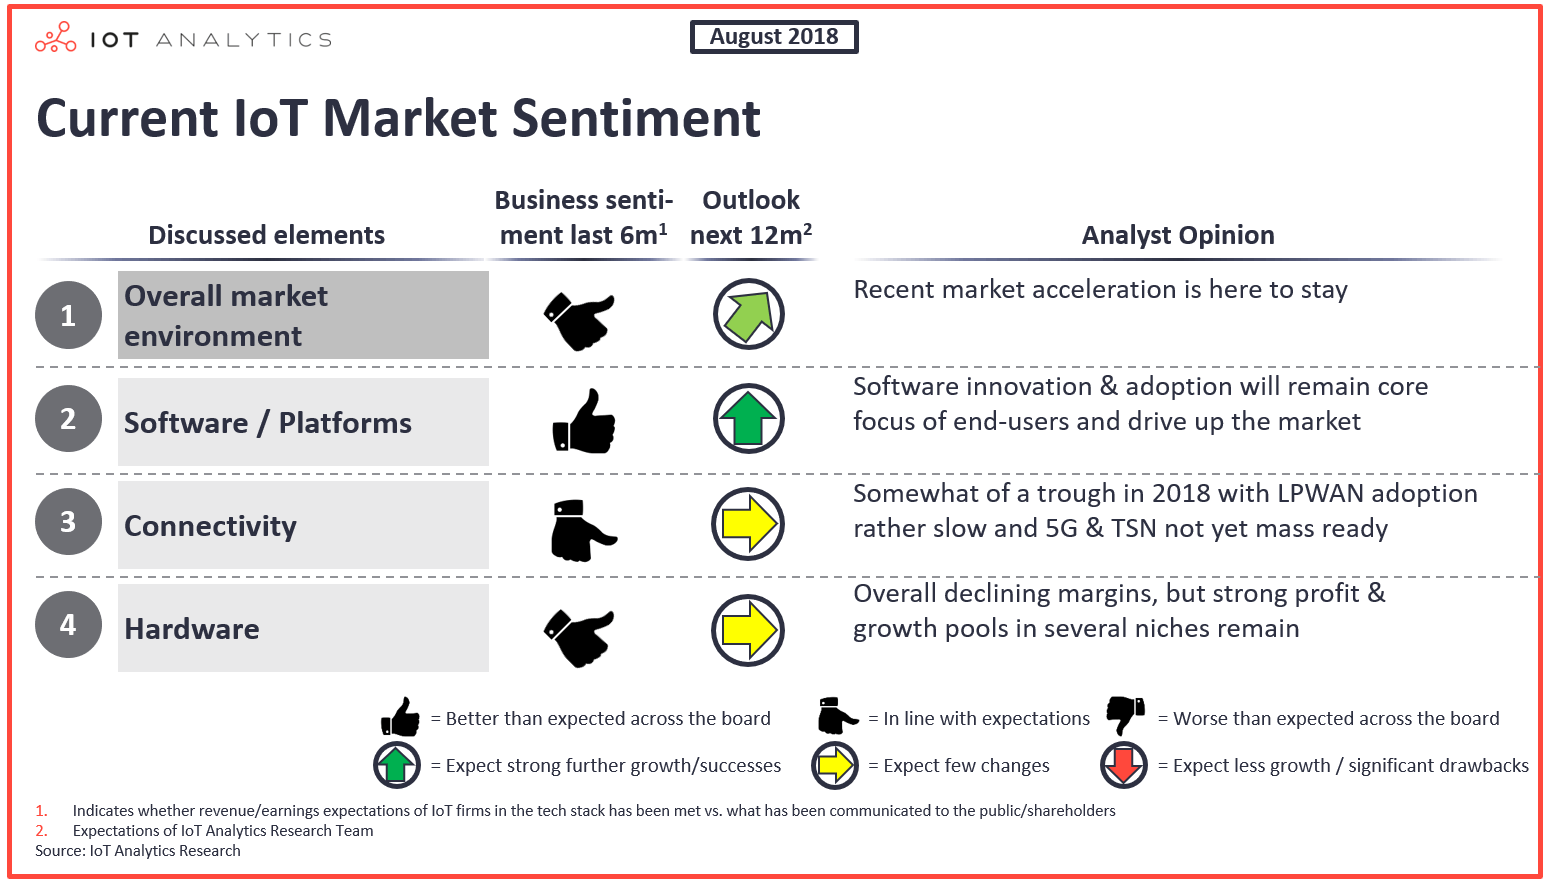 Current-IoT-Market-Sentiment-August-2018